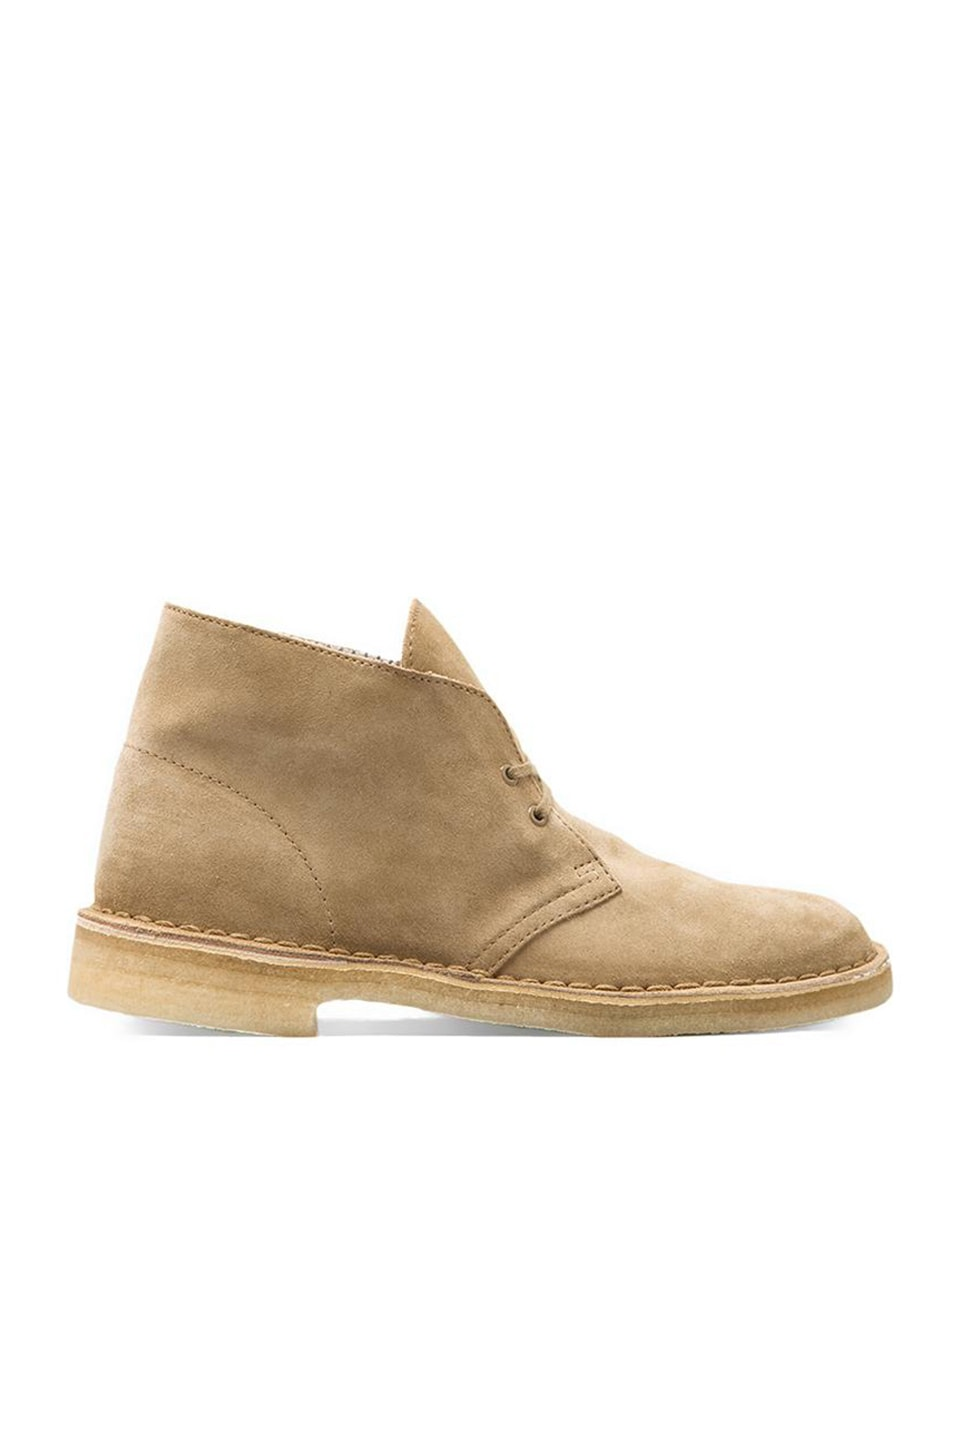 Clarks Originals Desert Boot in Oakwood Suede